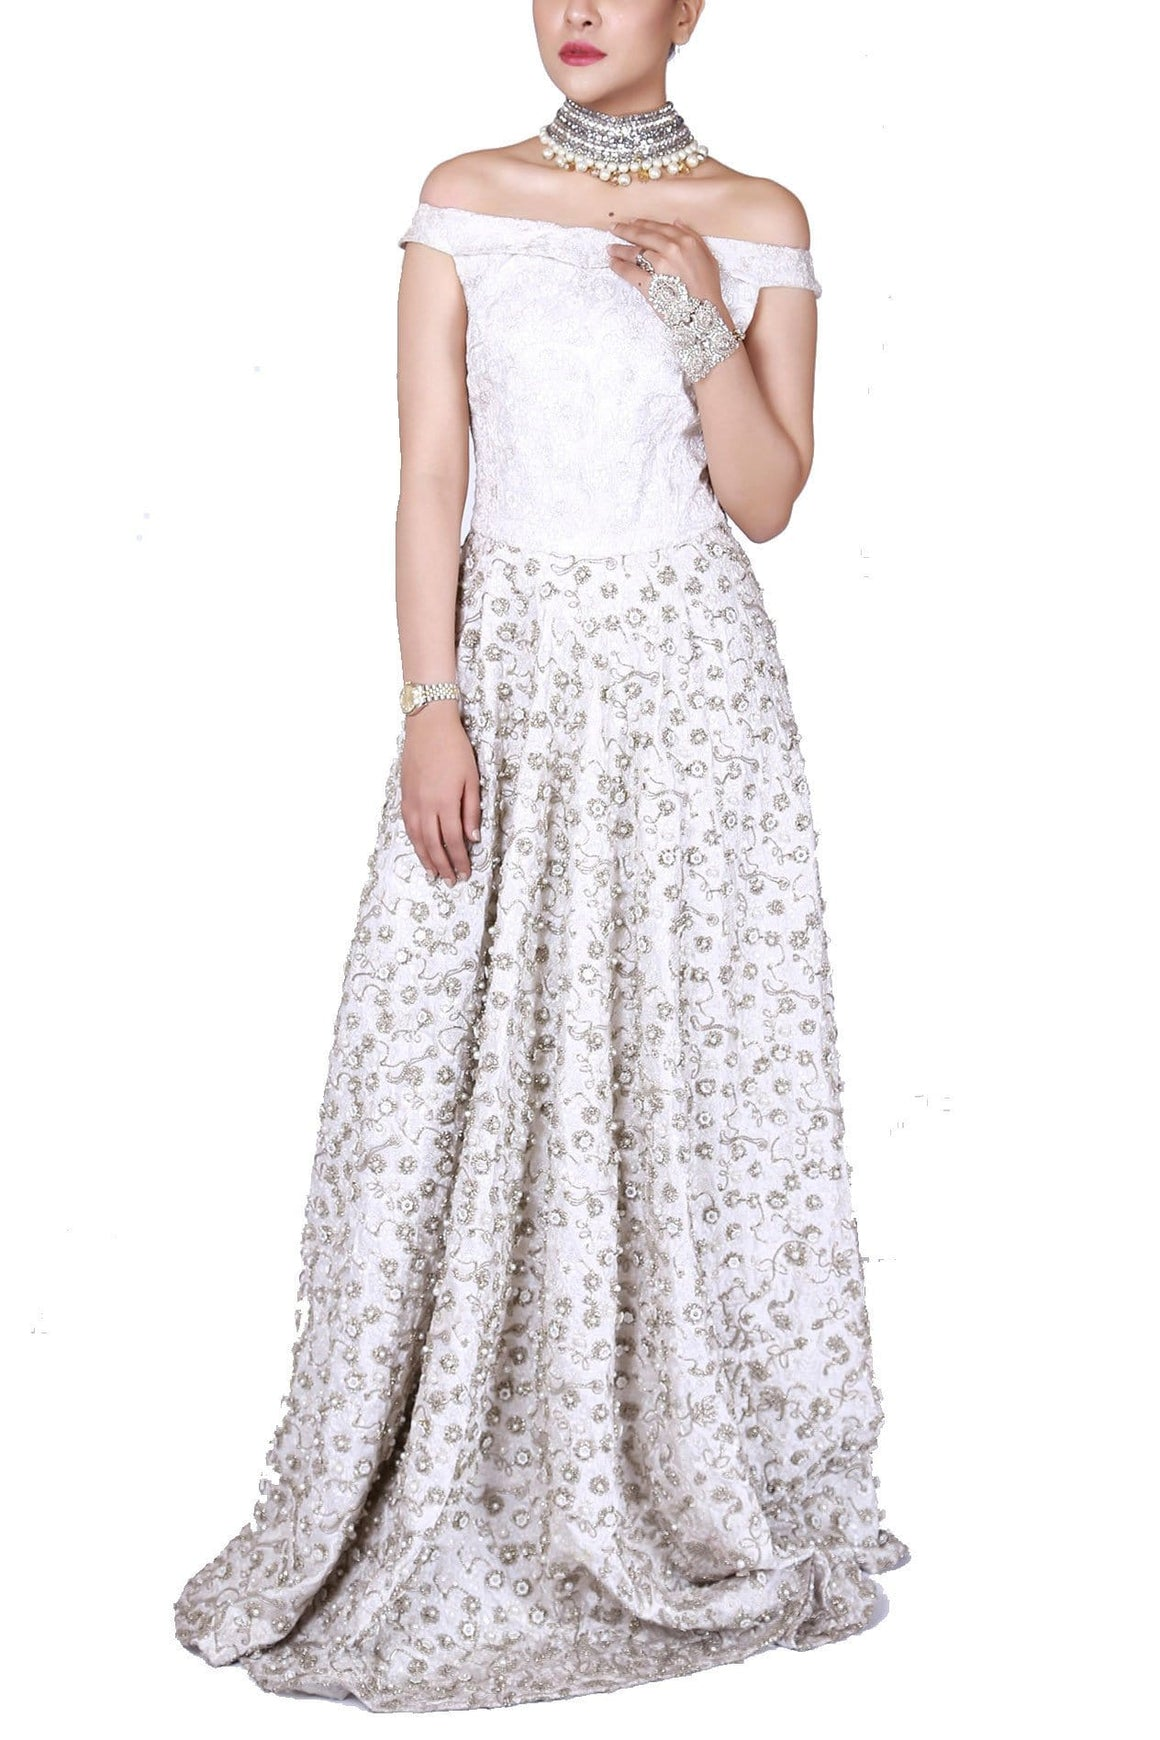 FnkAsia - Ivory Off Shoulder Richly Embellished Gown